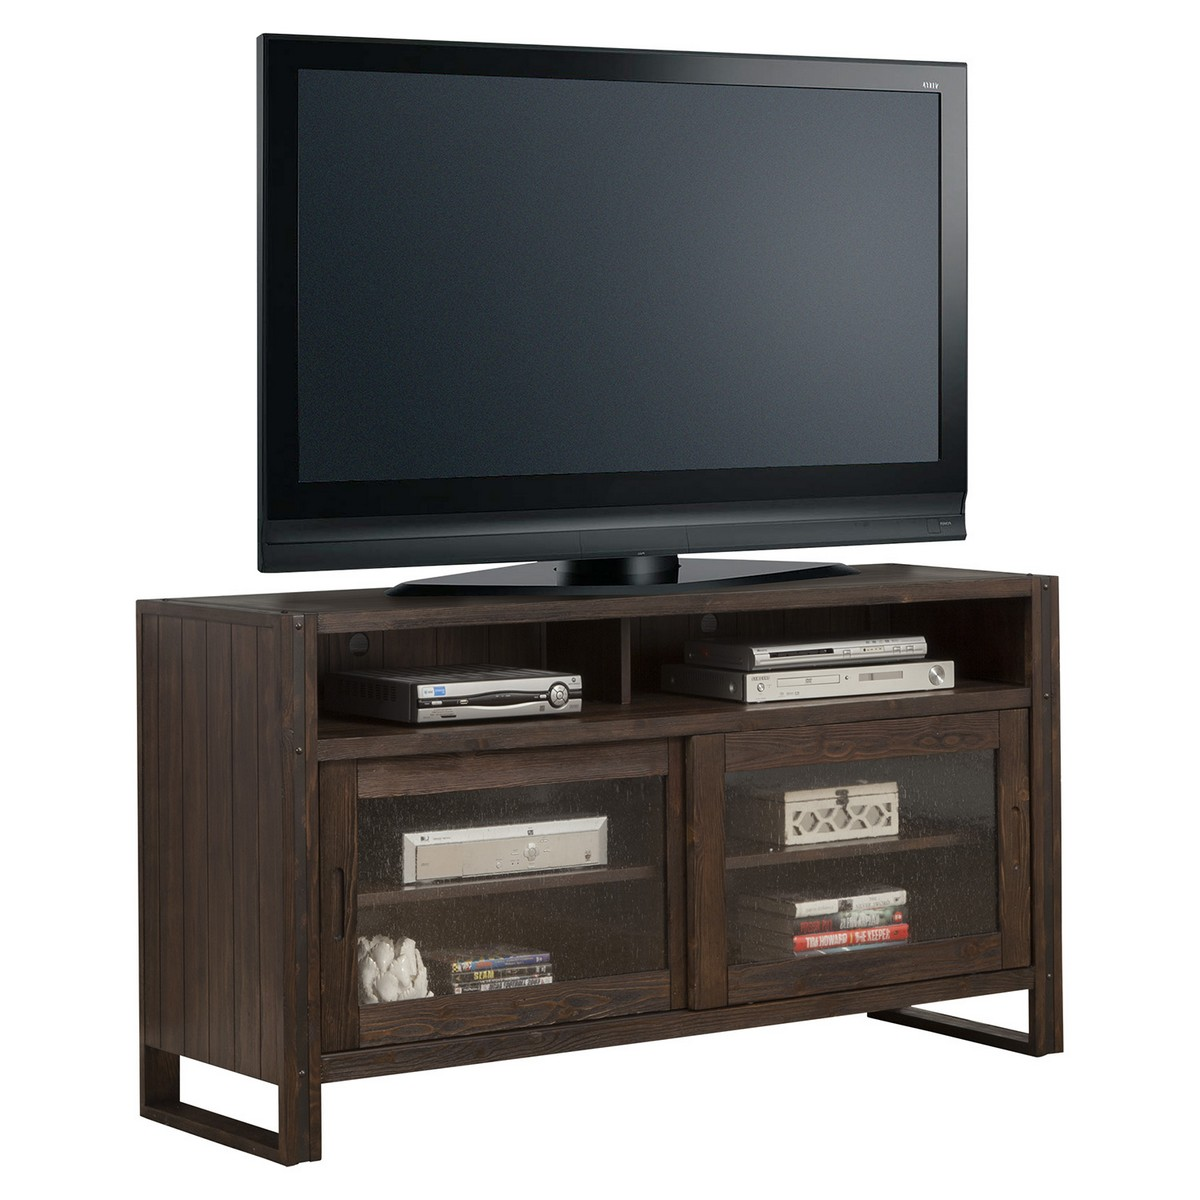 Parker House Brooklyn 60-inch TV Console - Antique Burnished Pine